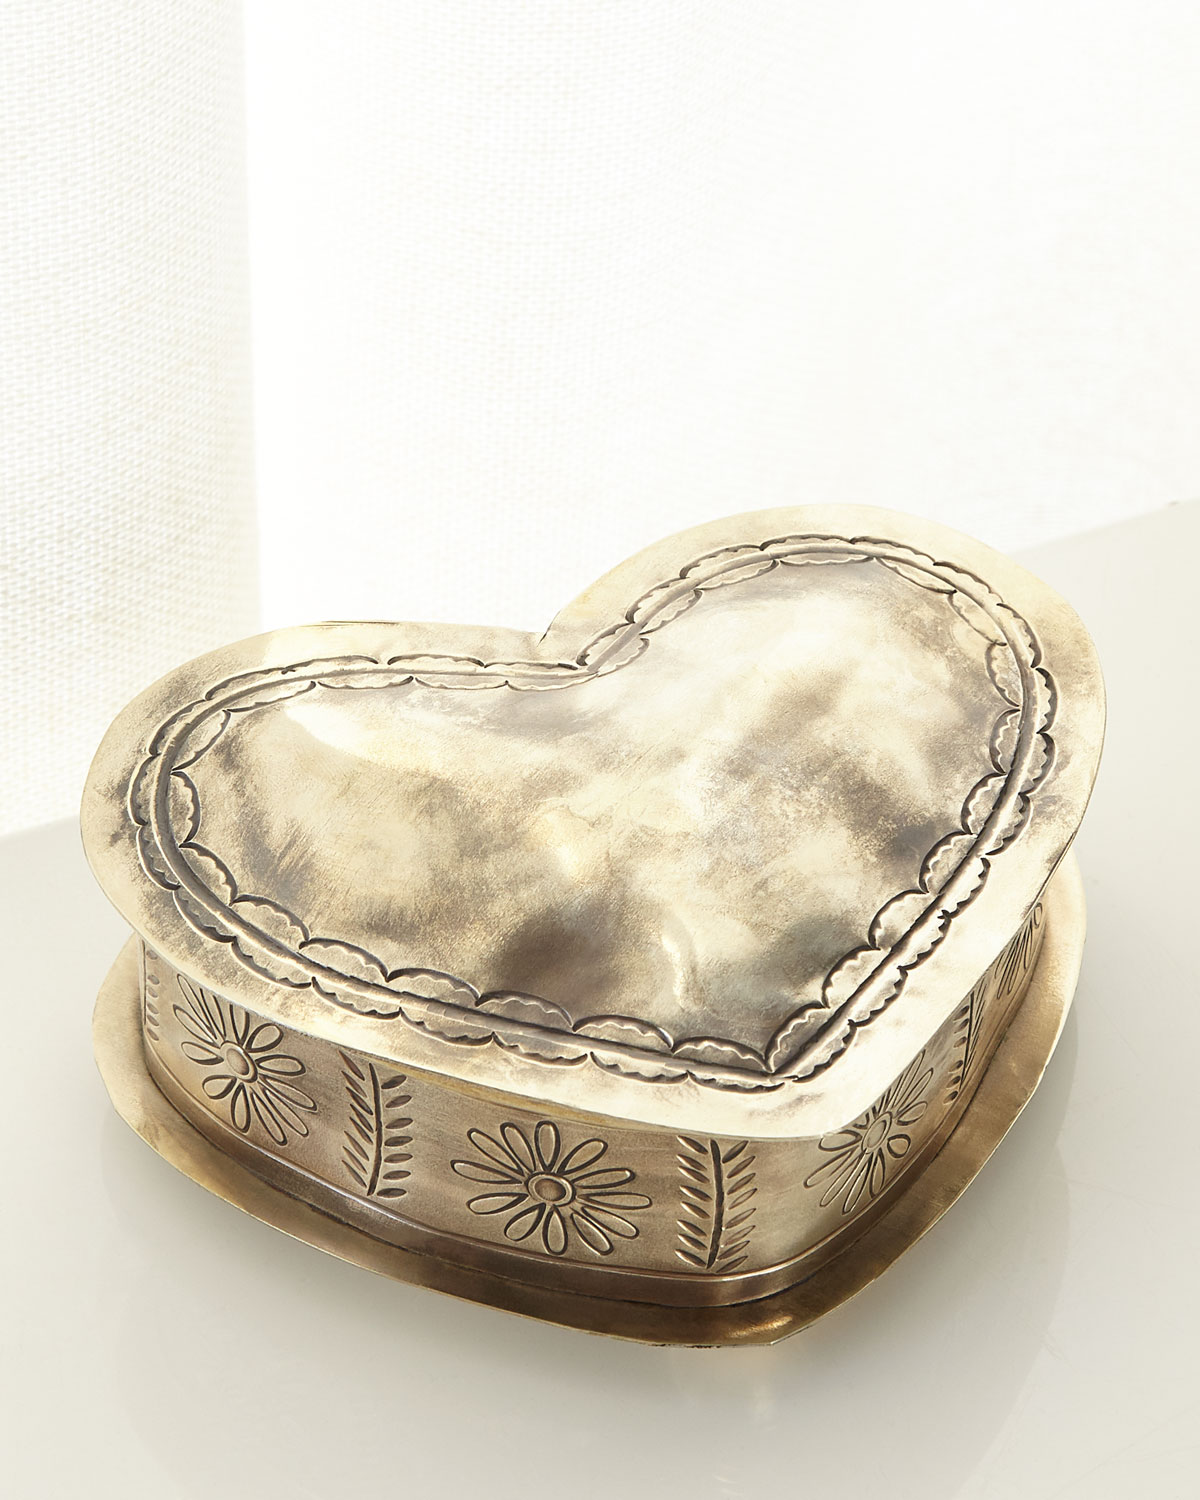 Stamped Corazon Keepsake Box